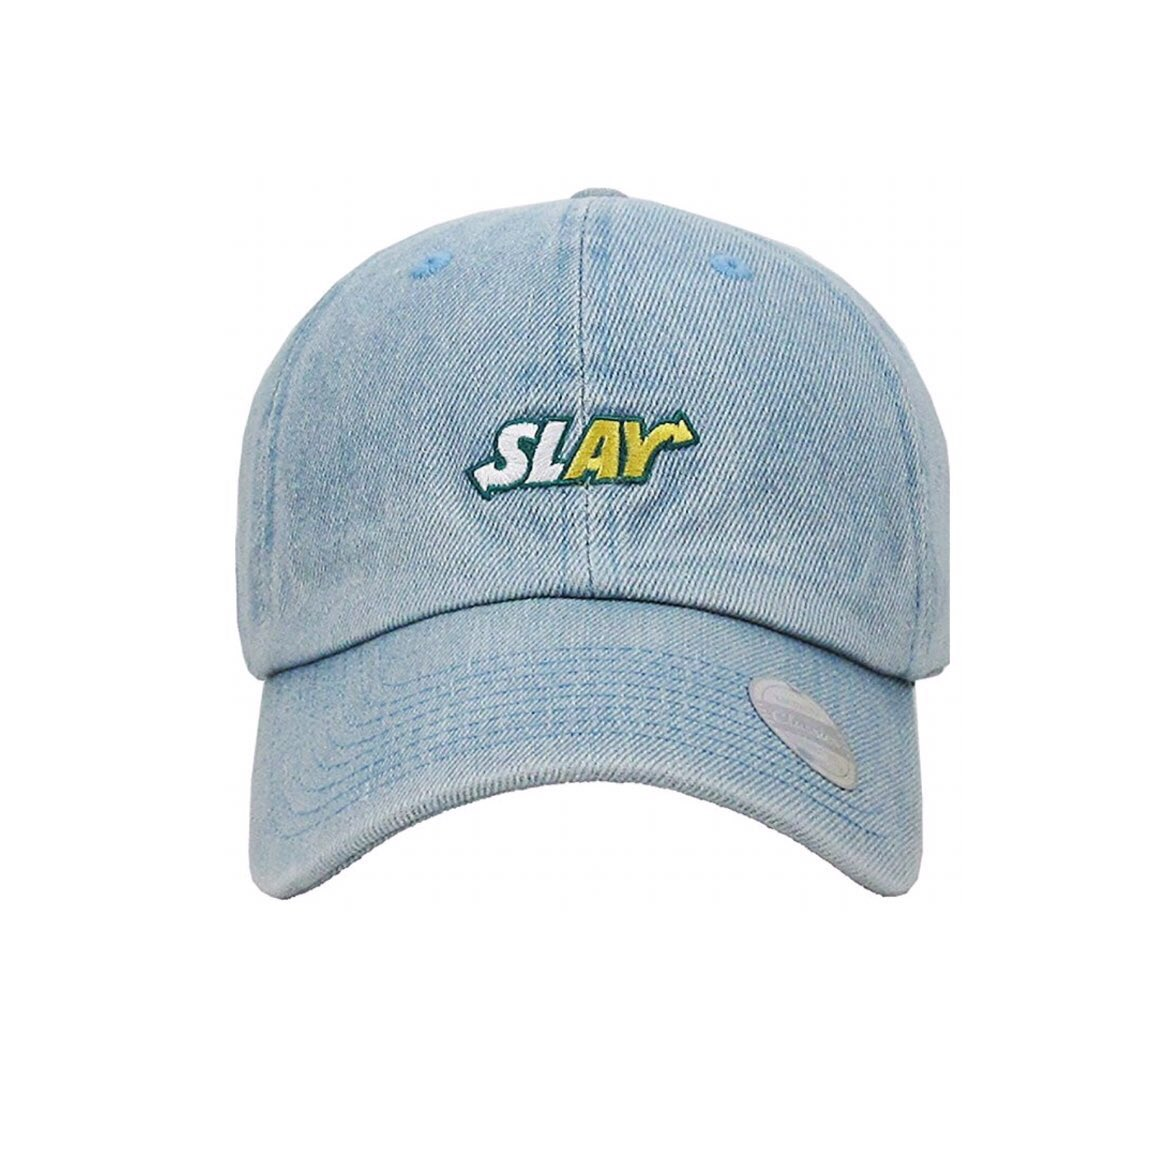 Slay Dad Hat ��  Shop: https://t.co/Ht92mO2mNb  Use Code 'Cap1' for 10% off + Free Shipping https://t.co/7zyGnCecii